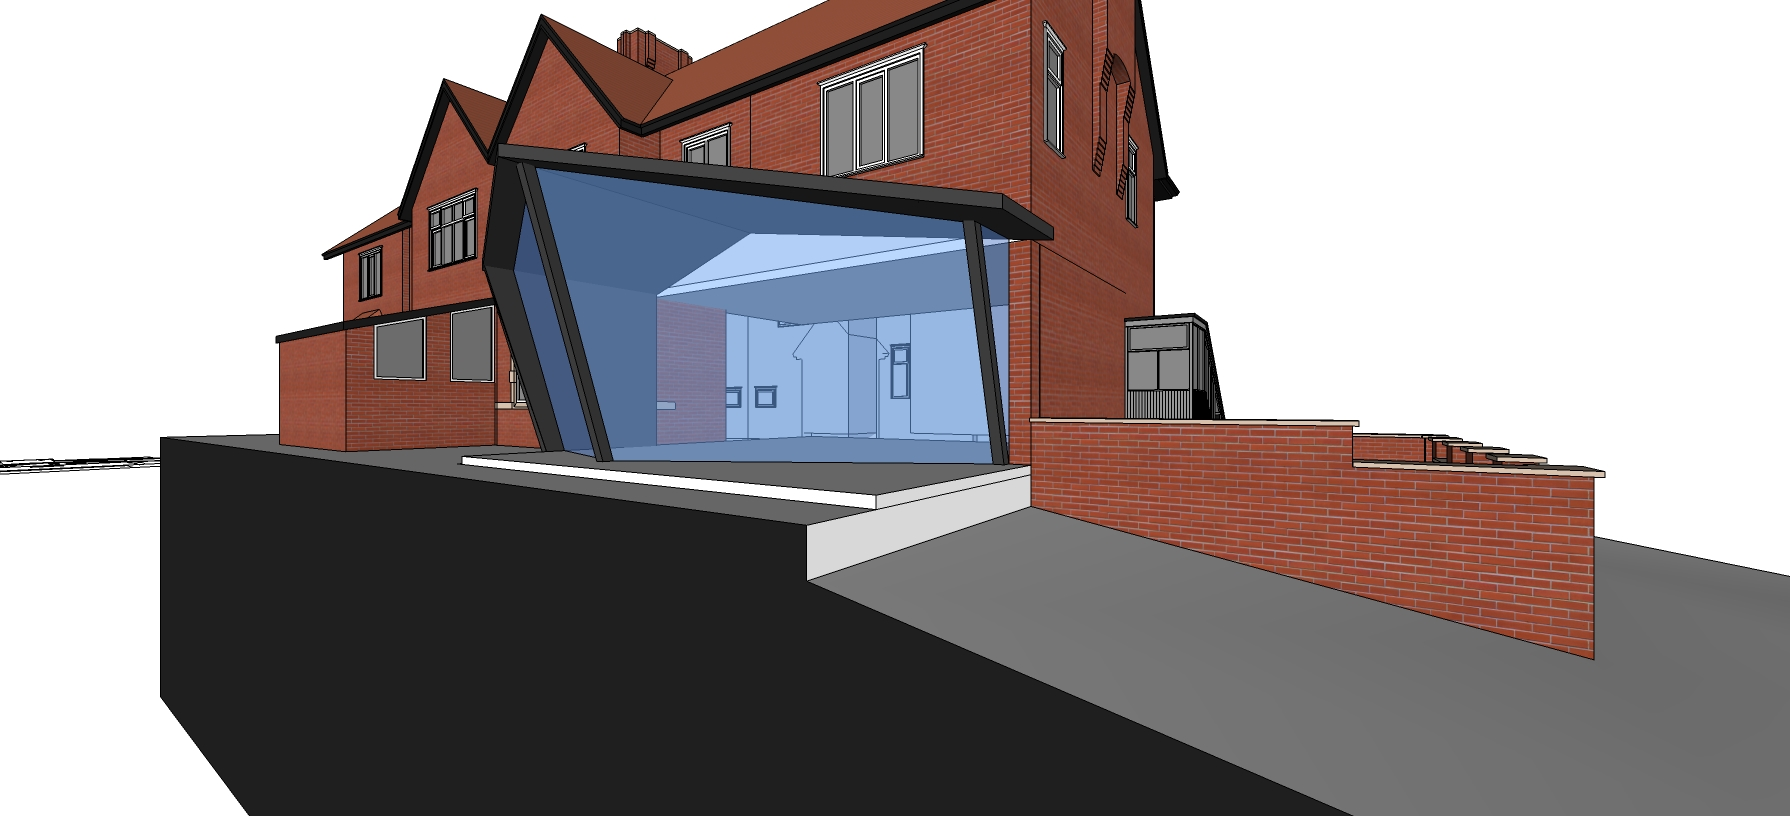 House extension drawings